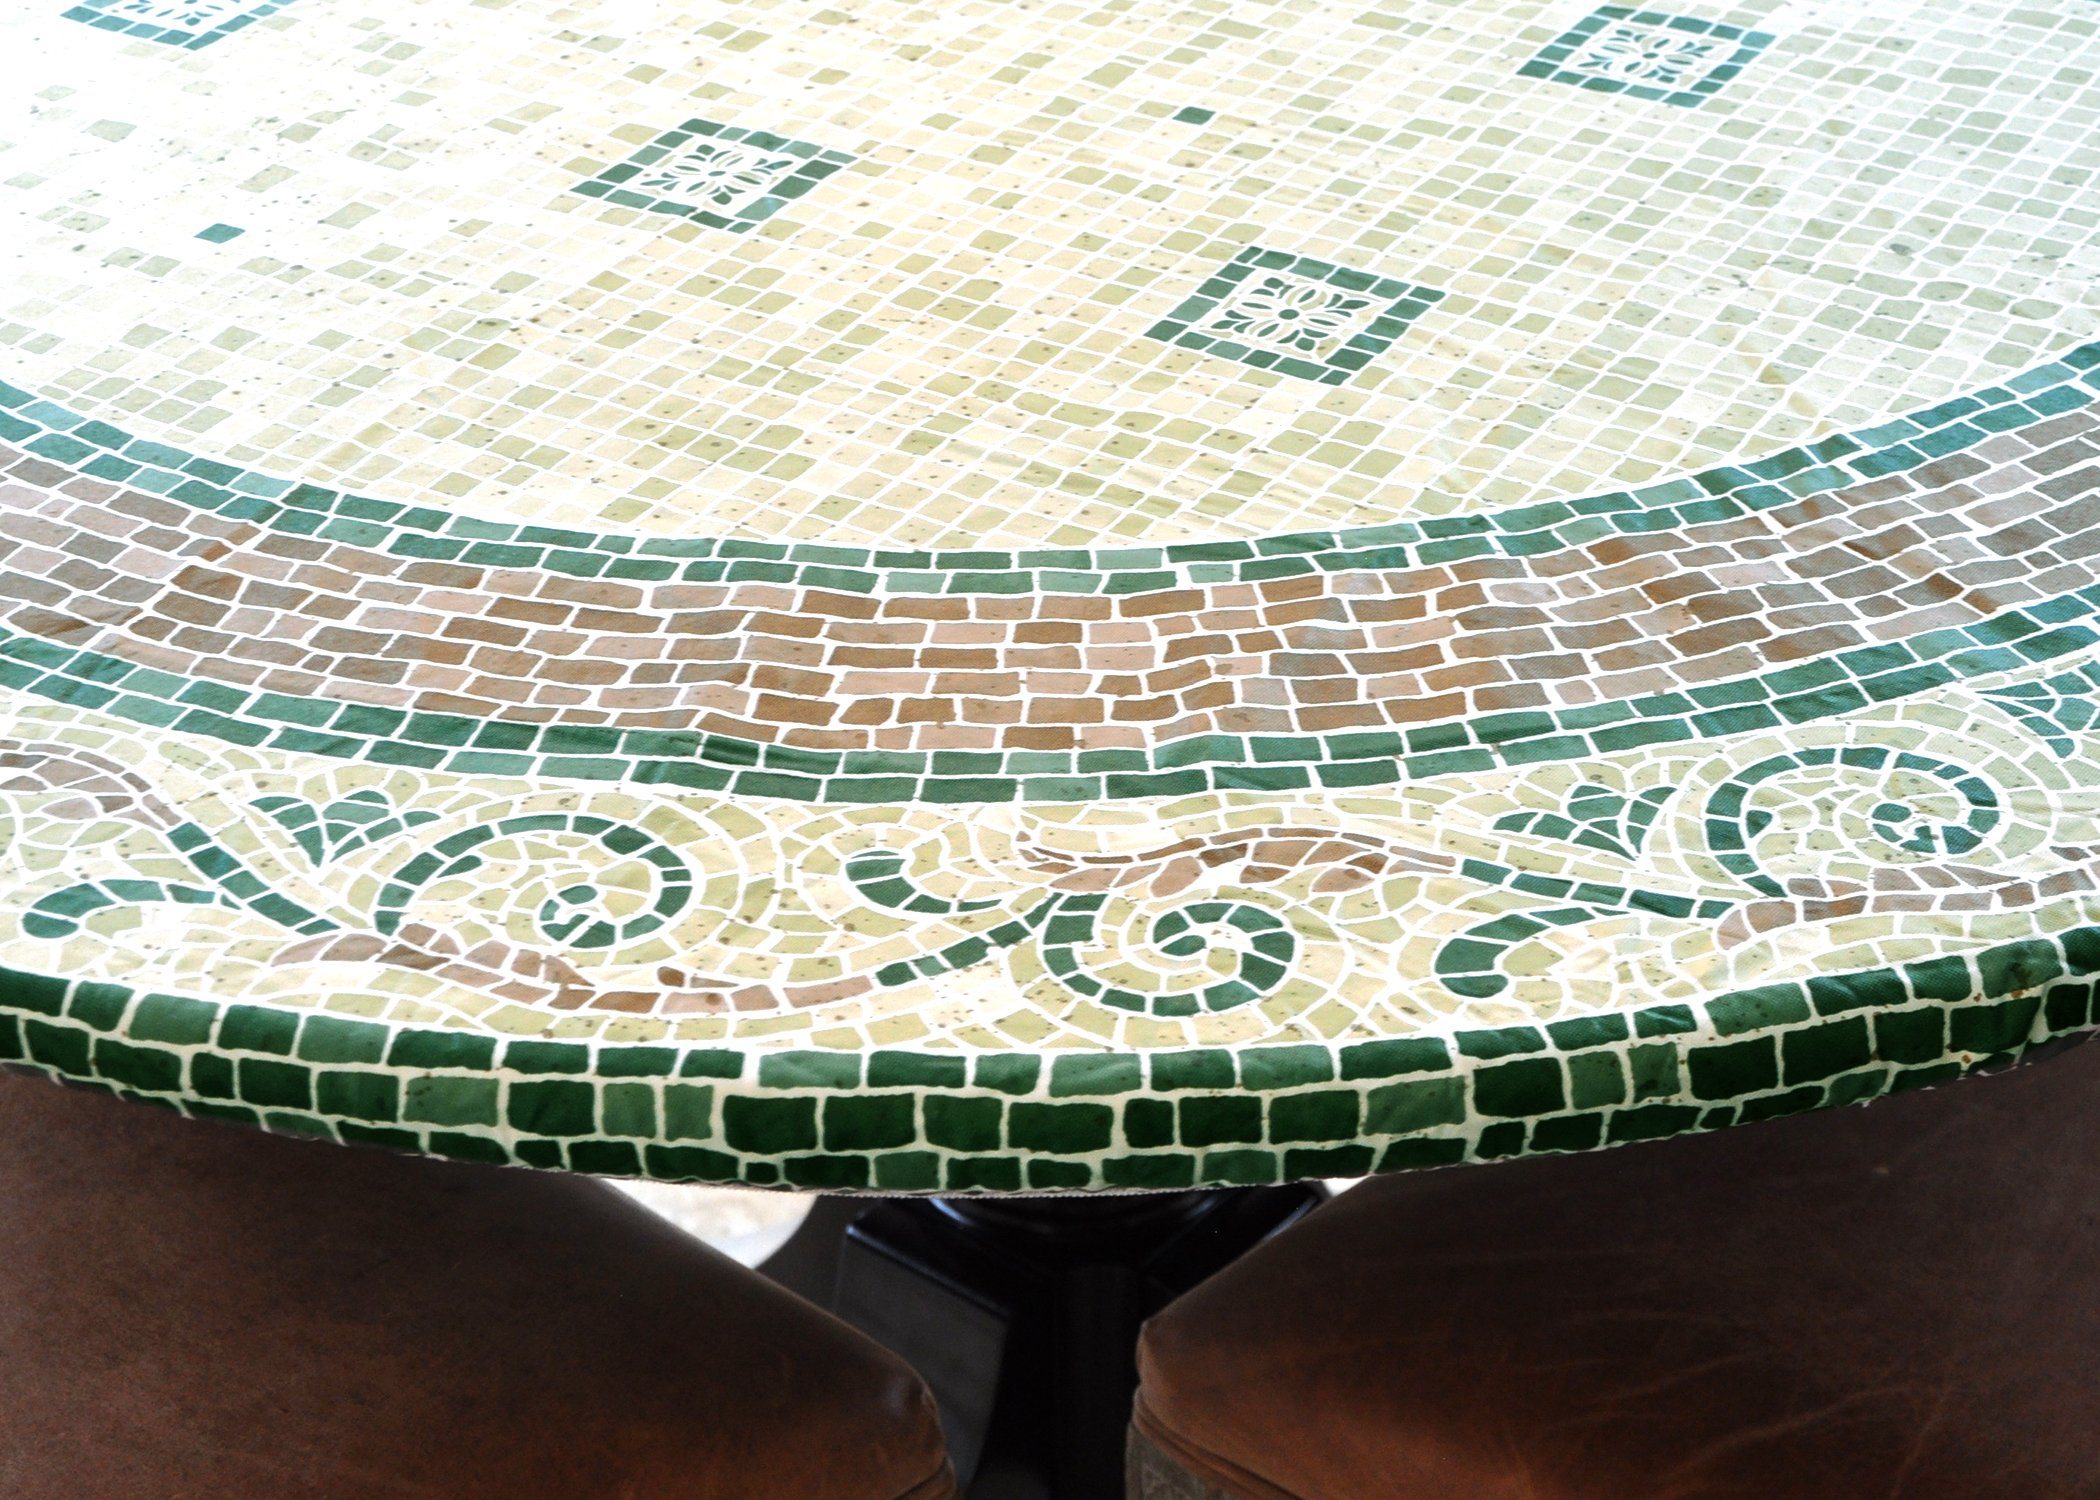 "LAMINET ELITE Elastic Edged Print Table Pad - MOSAIC GREEN - Large Round - Fits tables up to 45'' - 56"" Diameter - The ULTIMATE Protection For Your Table!!!"